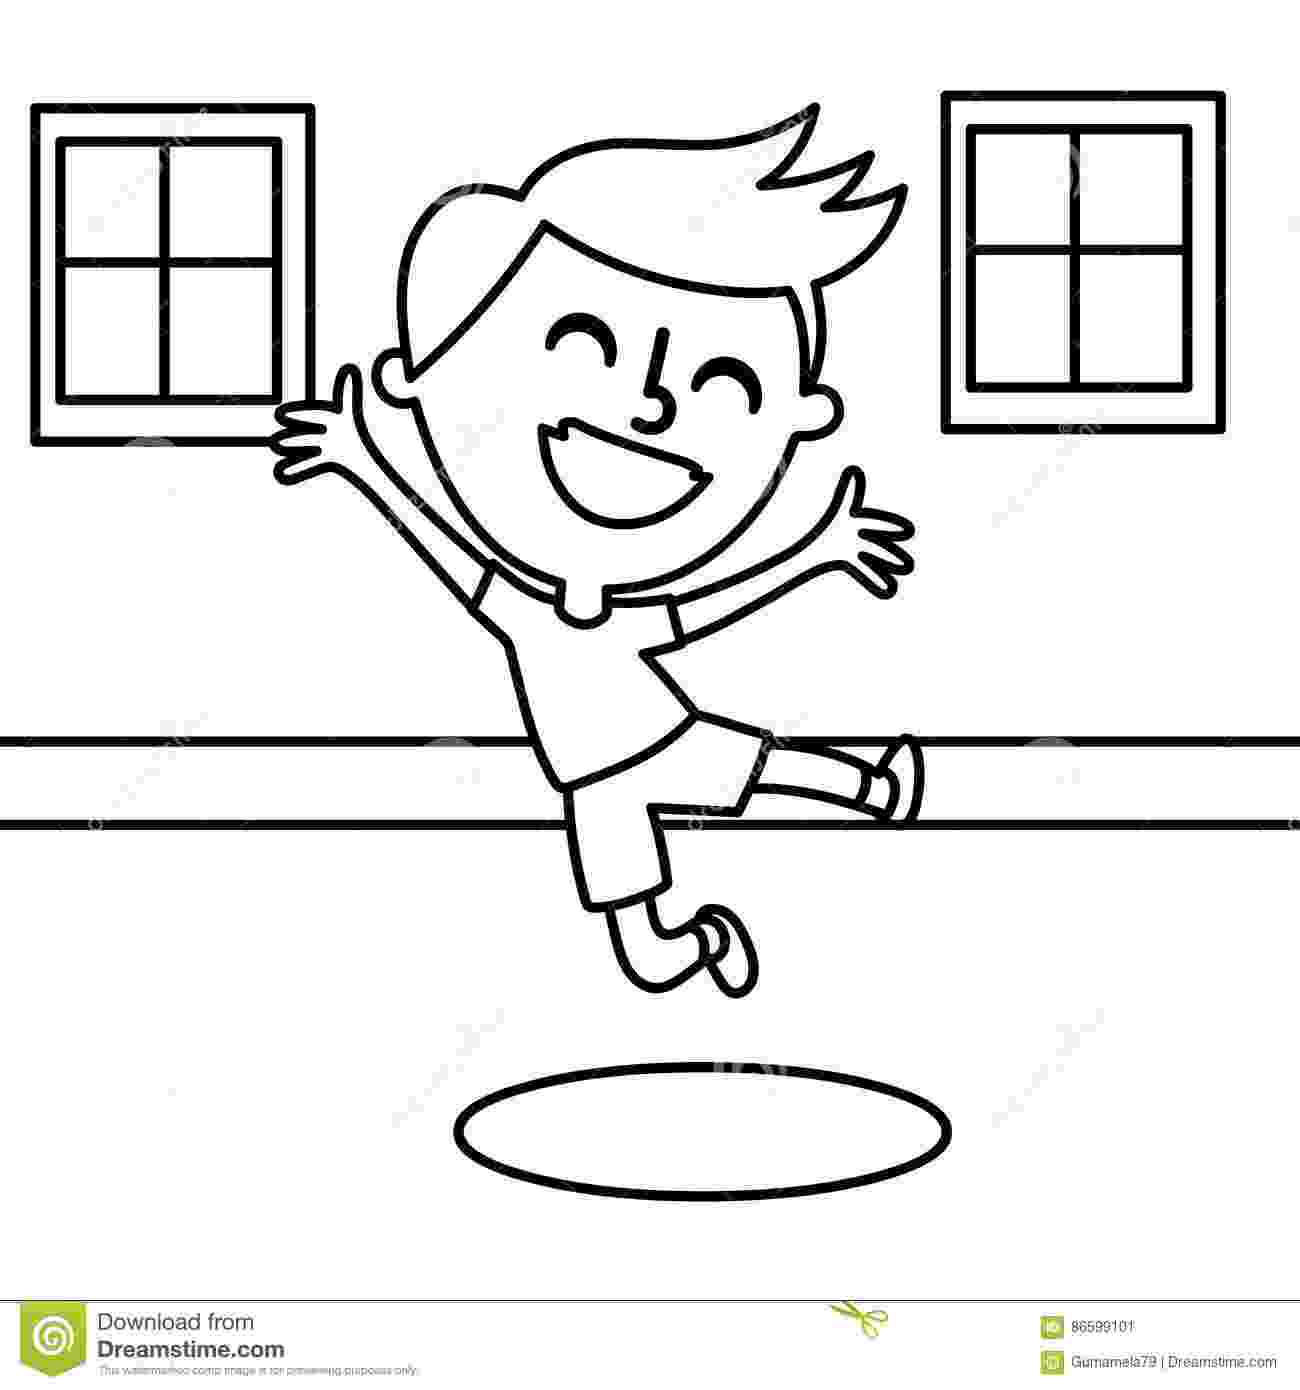 picture of a boy to color coloring pages boy and girl coloring home to picture of color boy a